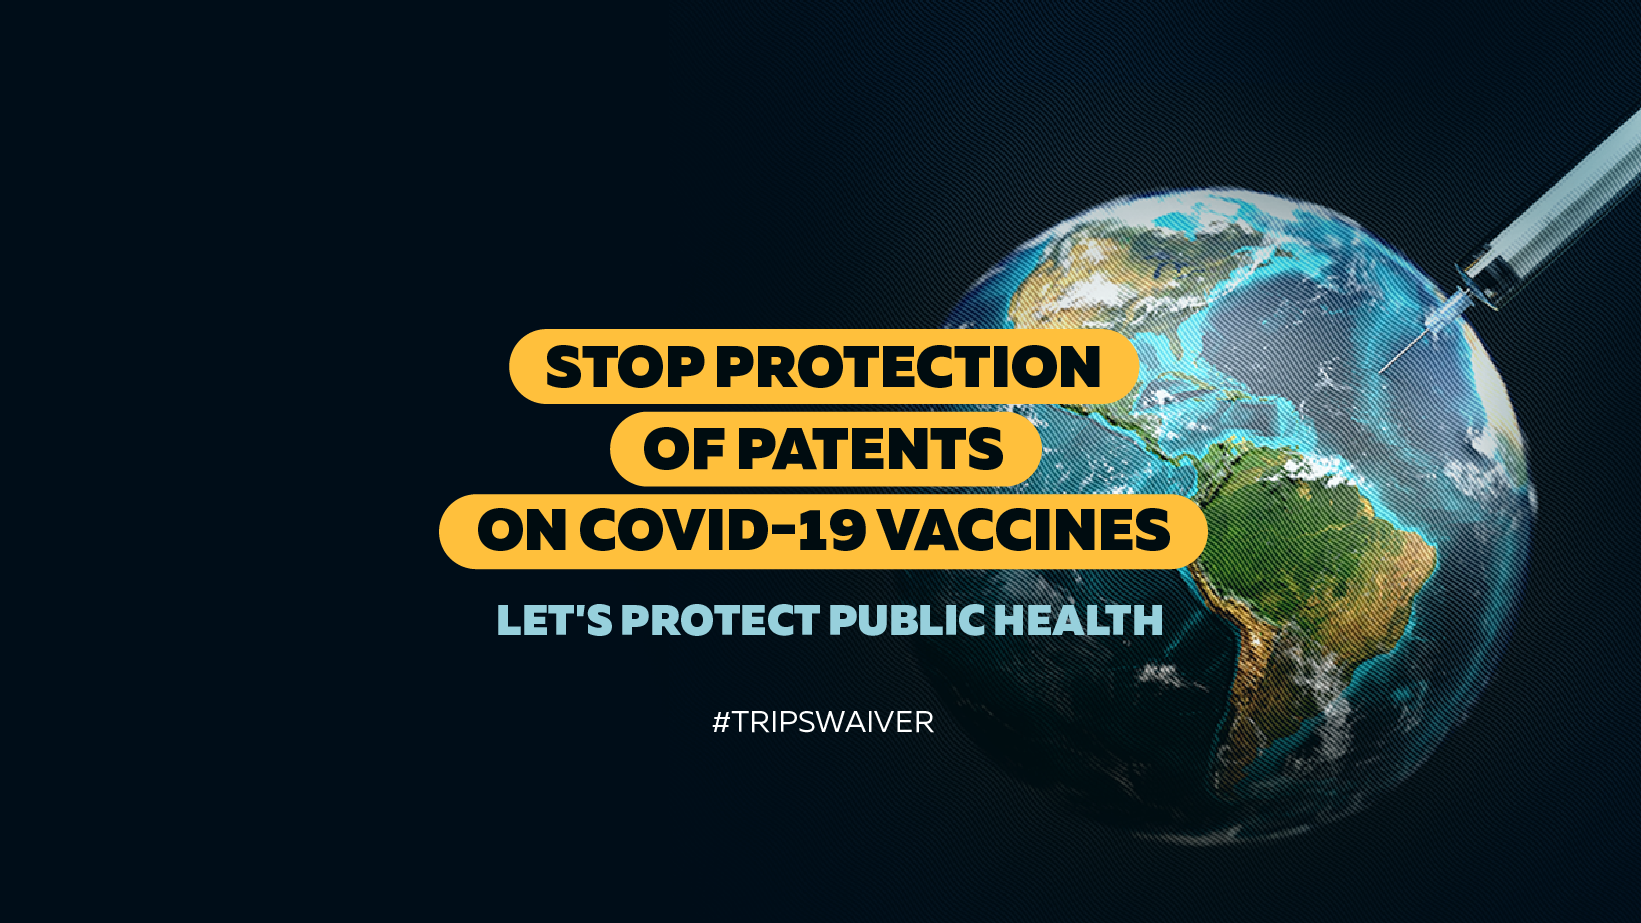 The TRIPS Waiver for Universal COVID-19 Vaccine Access: Our Petition